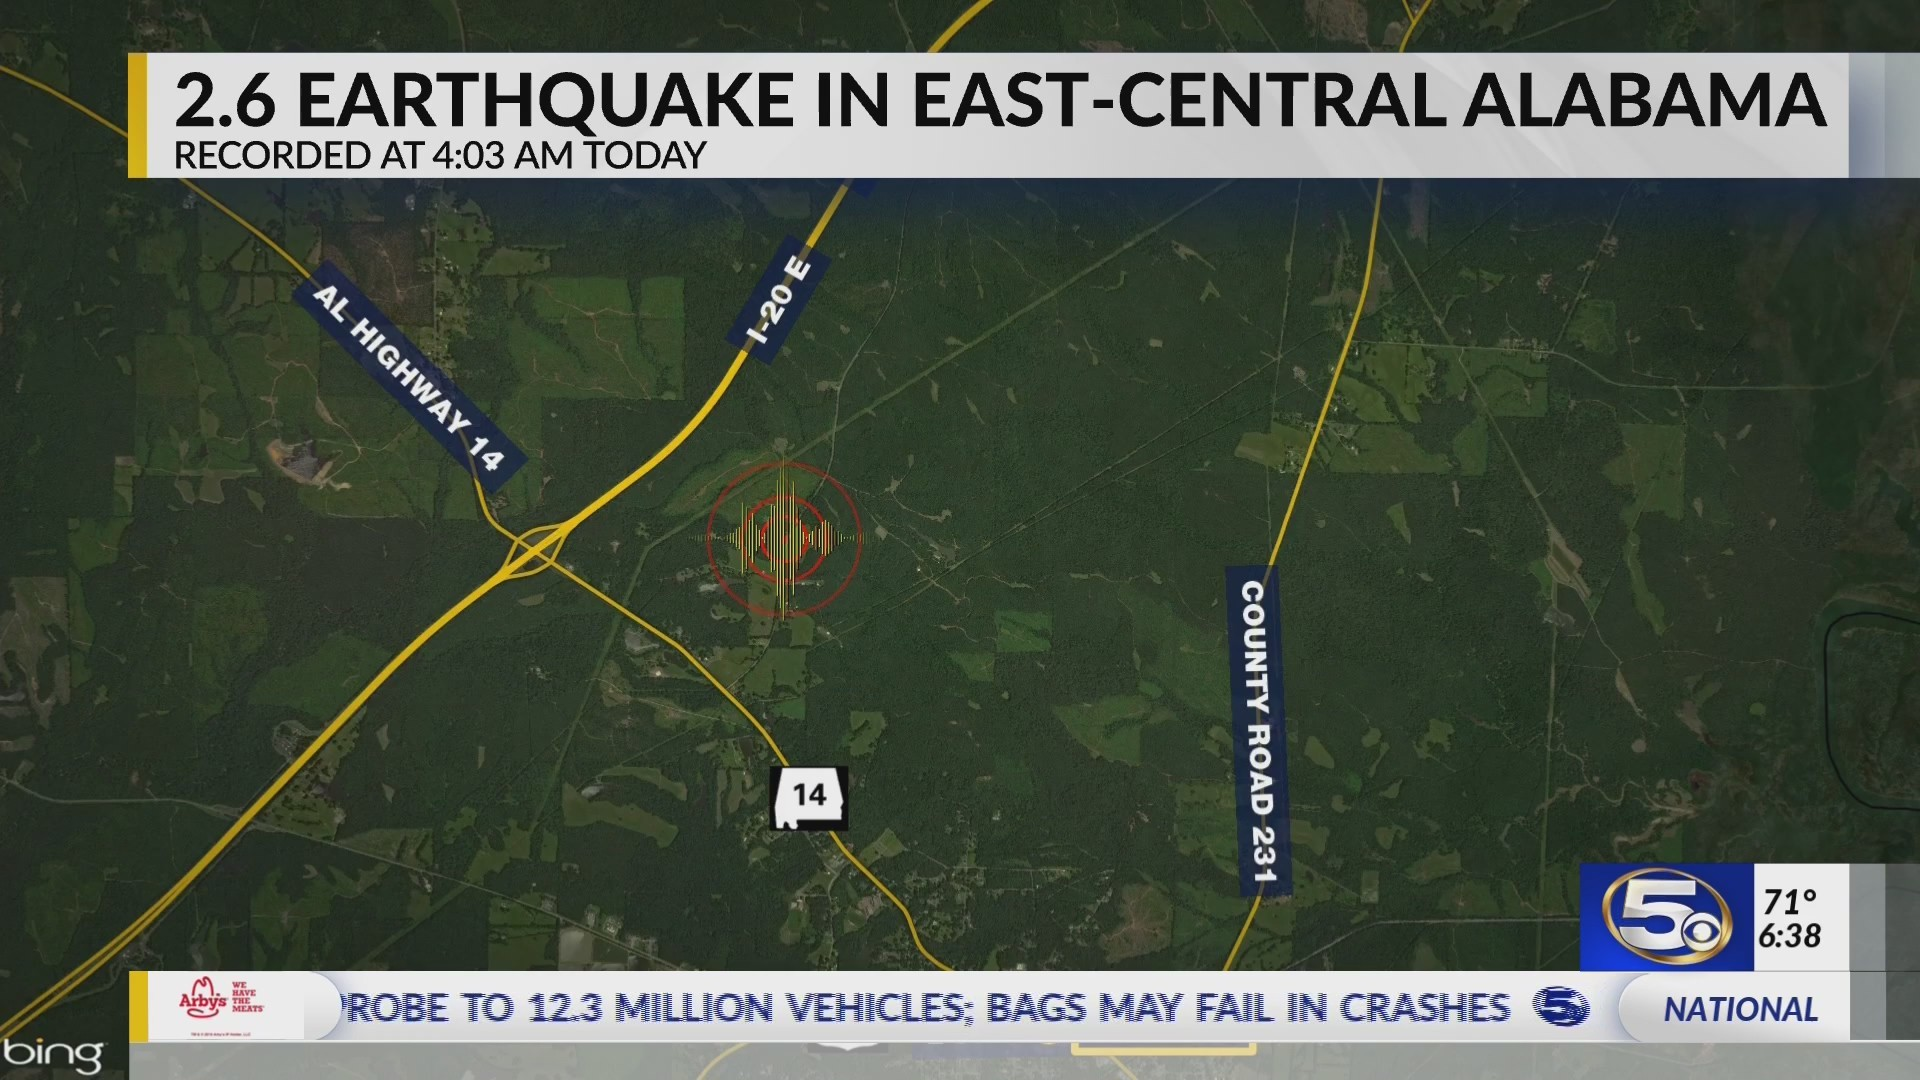 VIDEO: Alabama experiences another earthquake